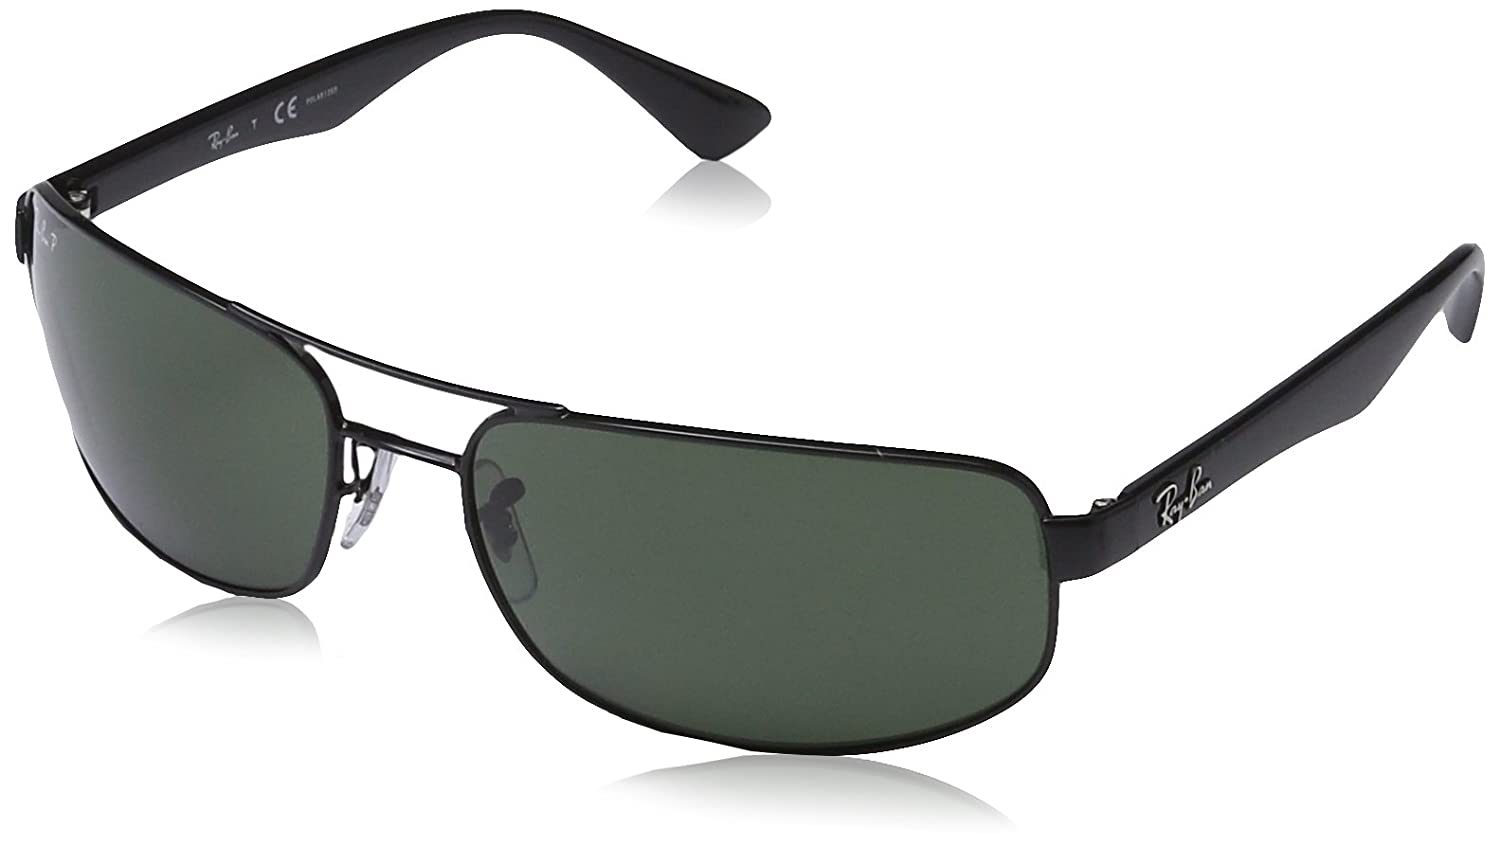 915e4b7fd091c Amazon.com  Ray-Ban Sunglasses (RB 3445)  Clothing